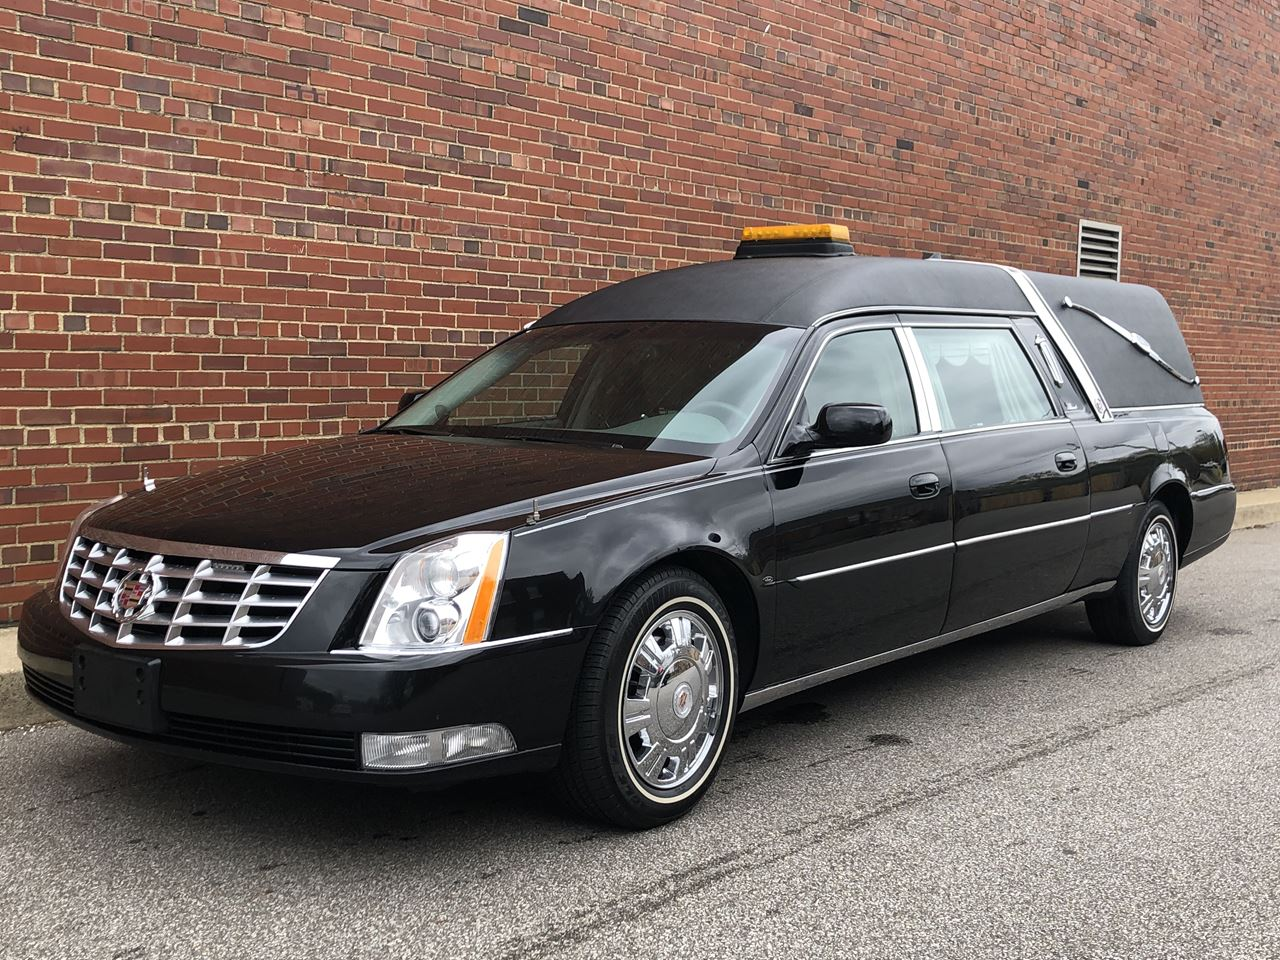 2011 Cadillac Eagle Kingsley Hearse 18 18